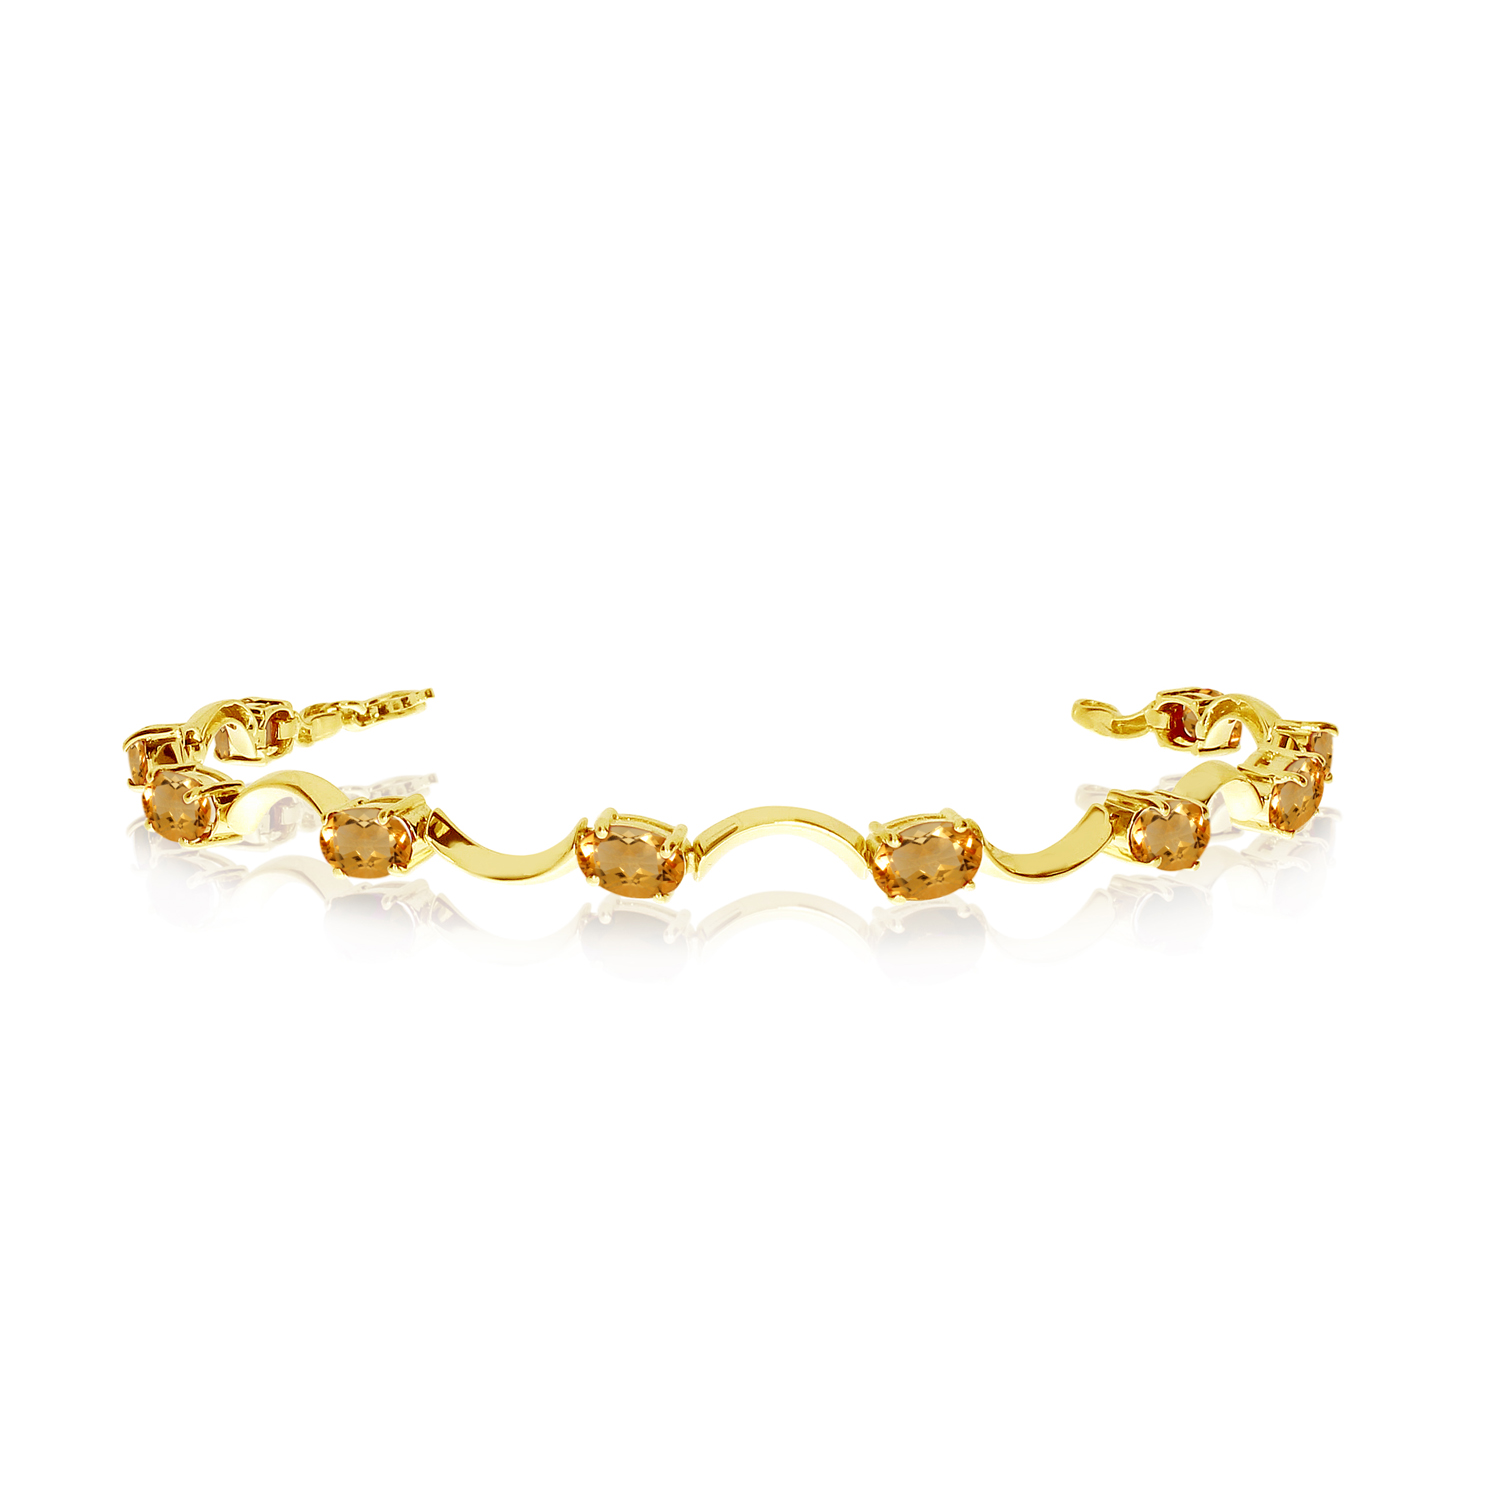 10K Yellow Gold Oval Citrine Curved Bar Bracelet by